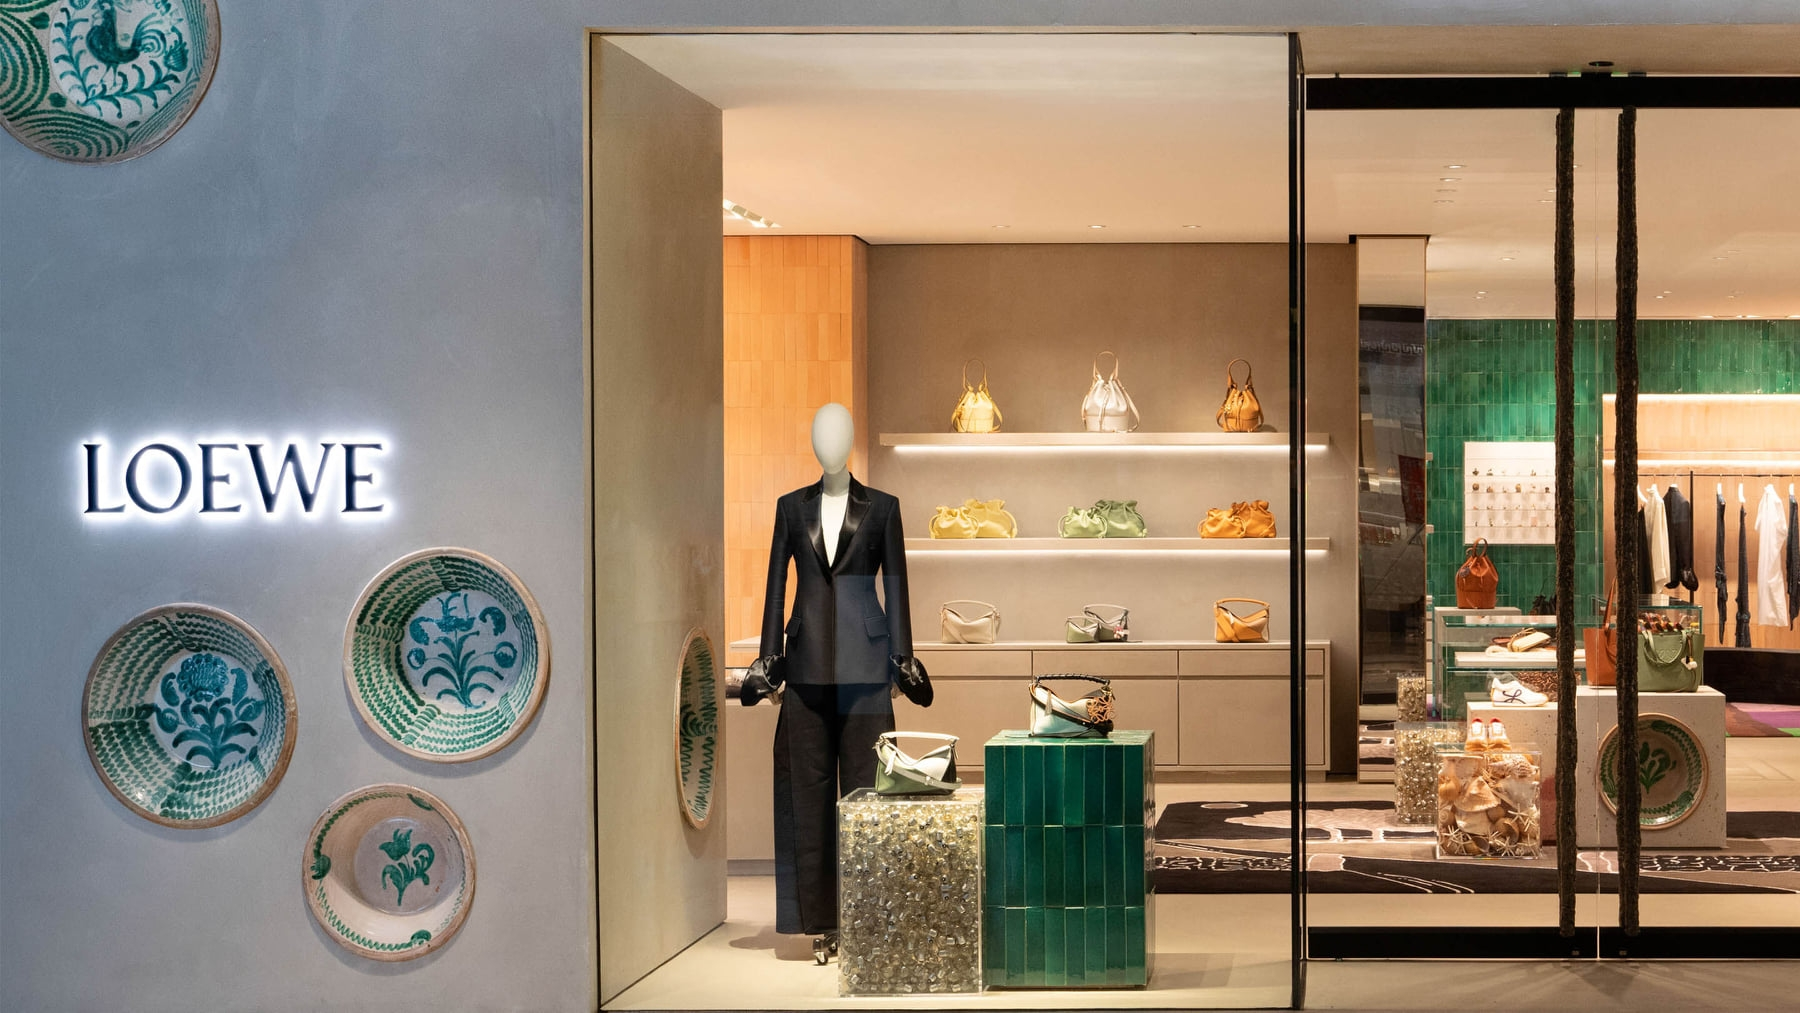 LOEWE opens new store in California